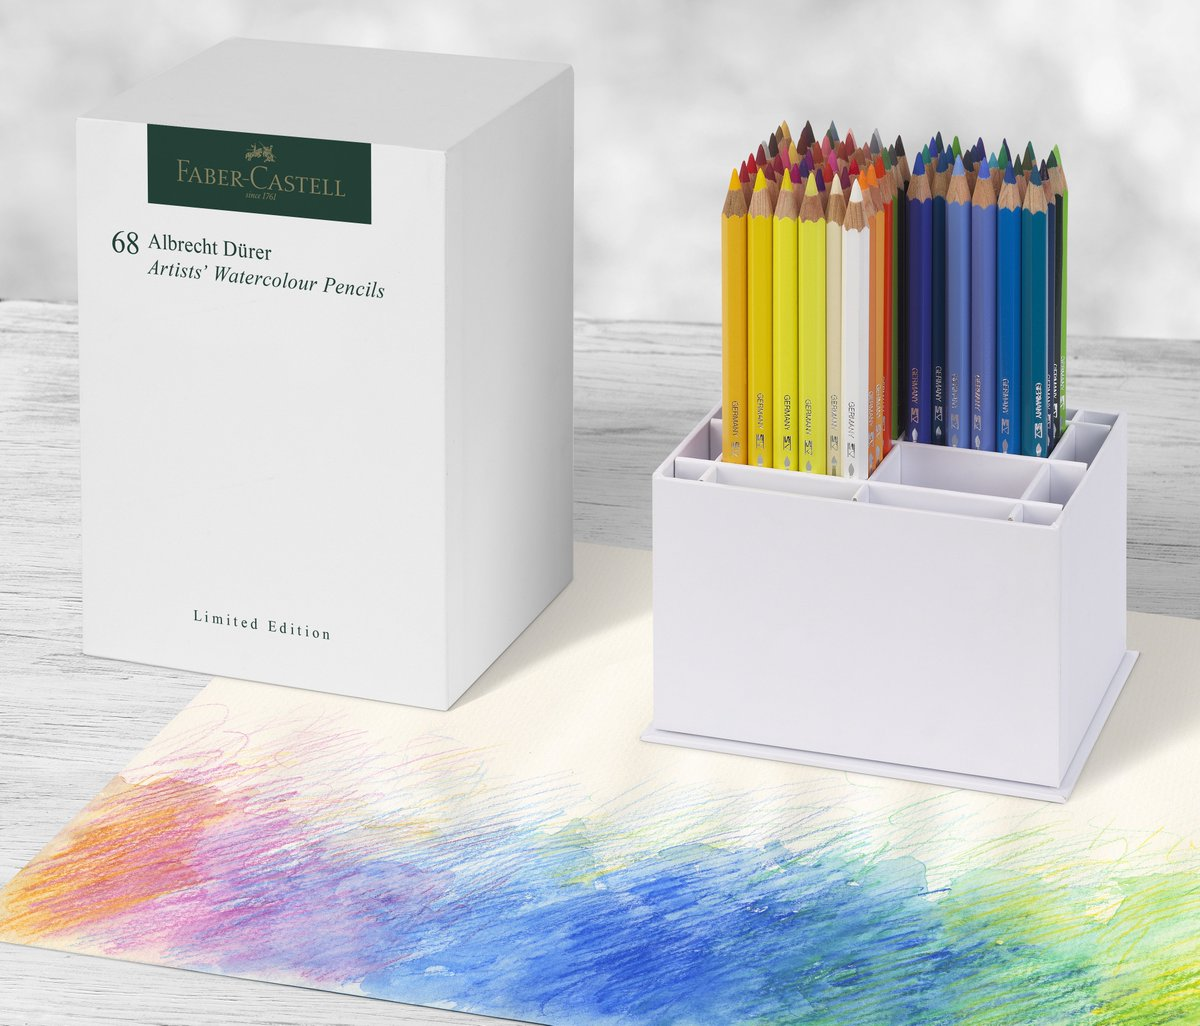 Faber Castell Fabercastell Twitter Colour To Life 14 Replies 42 Retweets 213 Likes